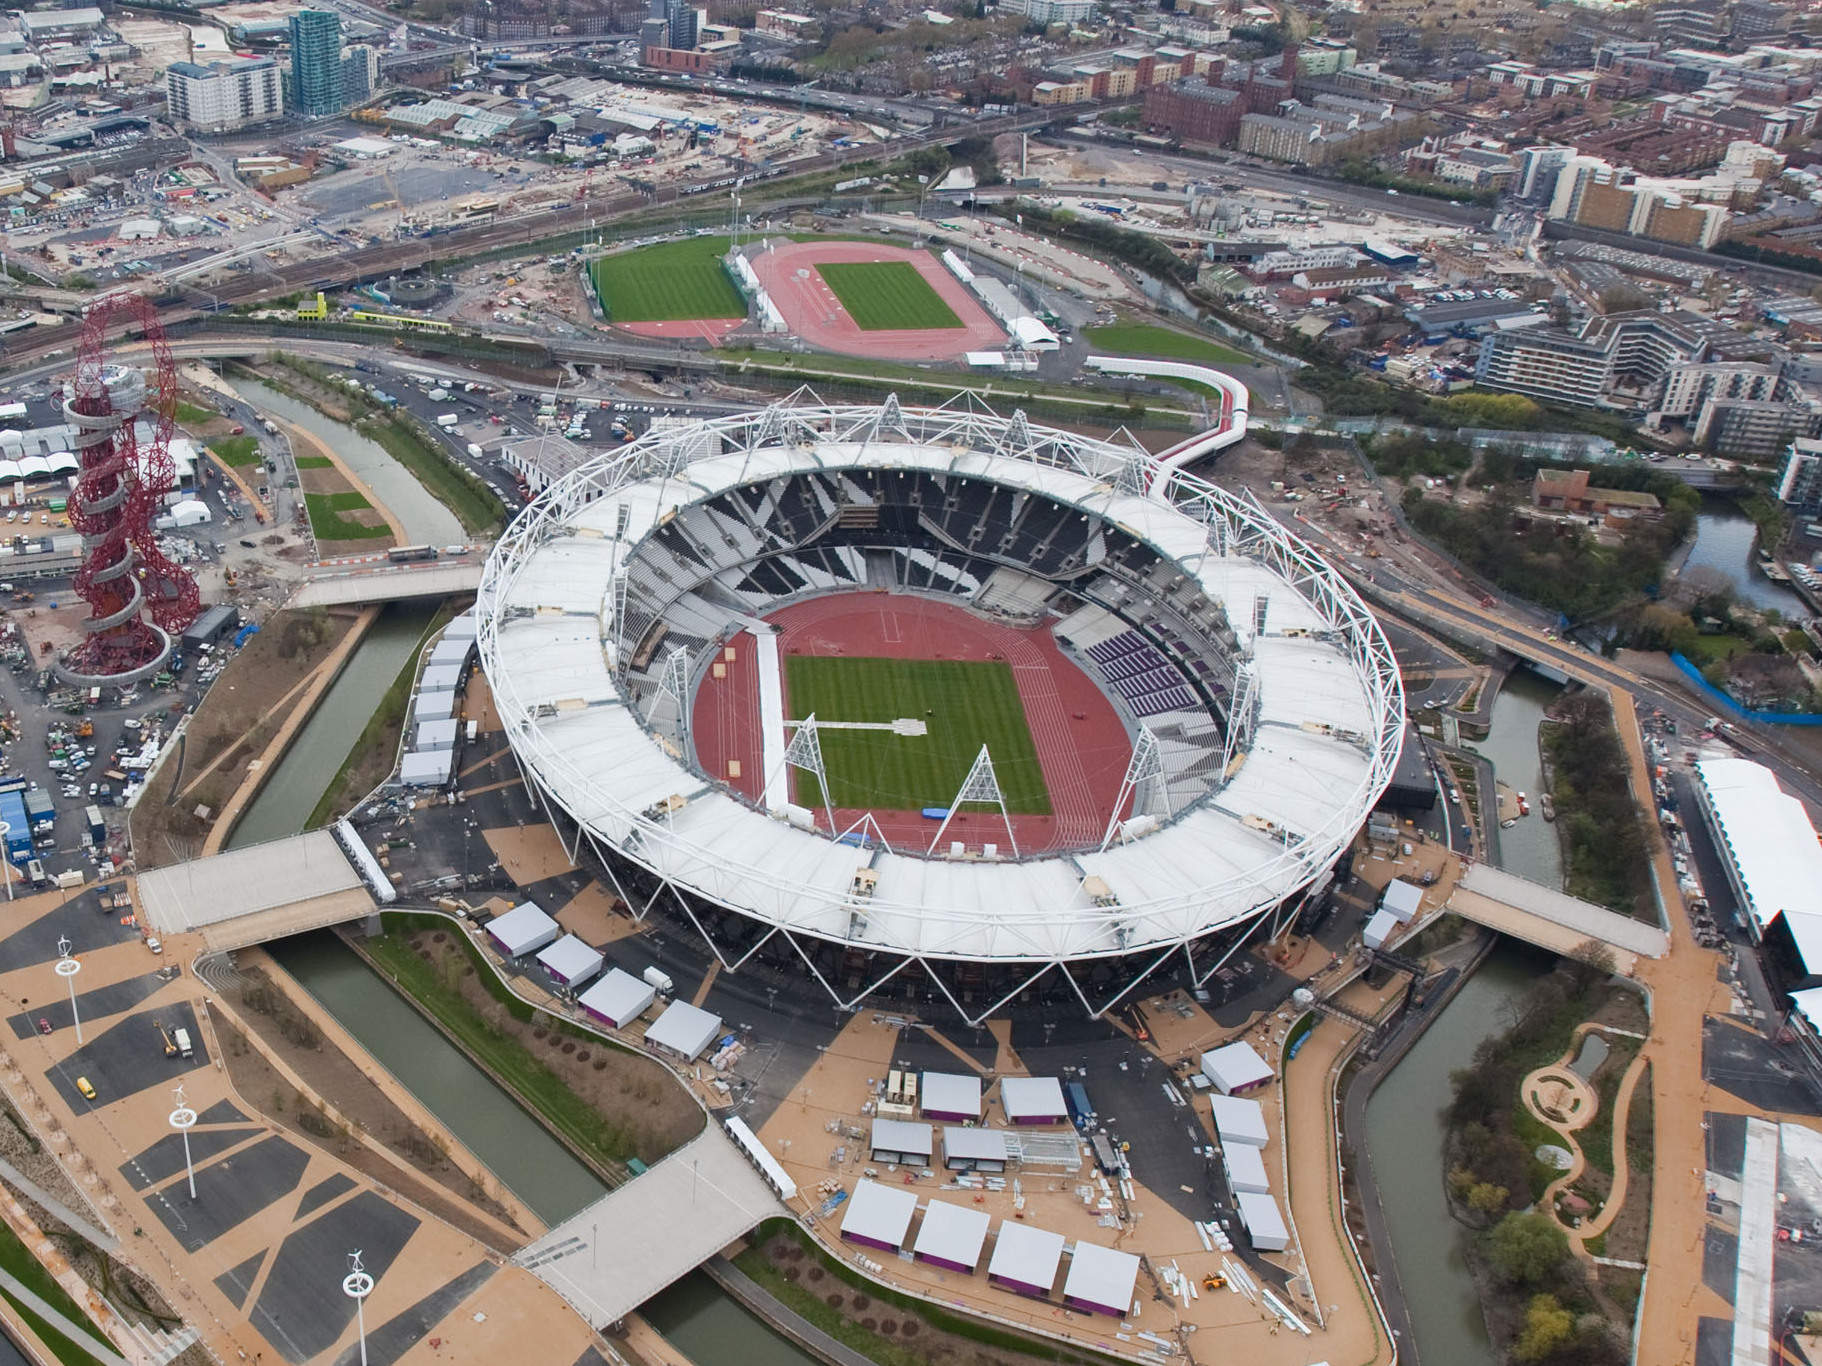 Olympic Stadium, delayed construction projects in the UK